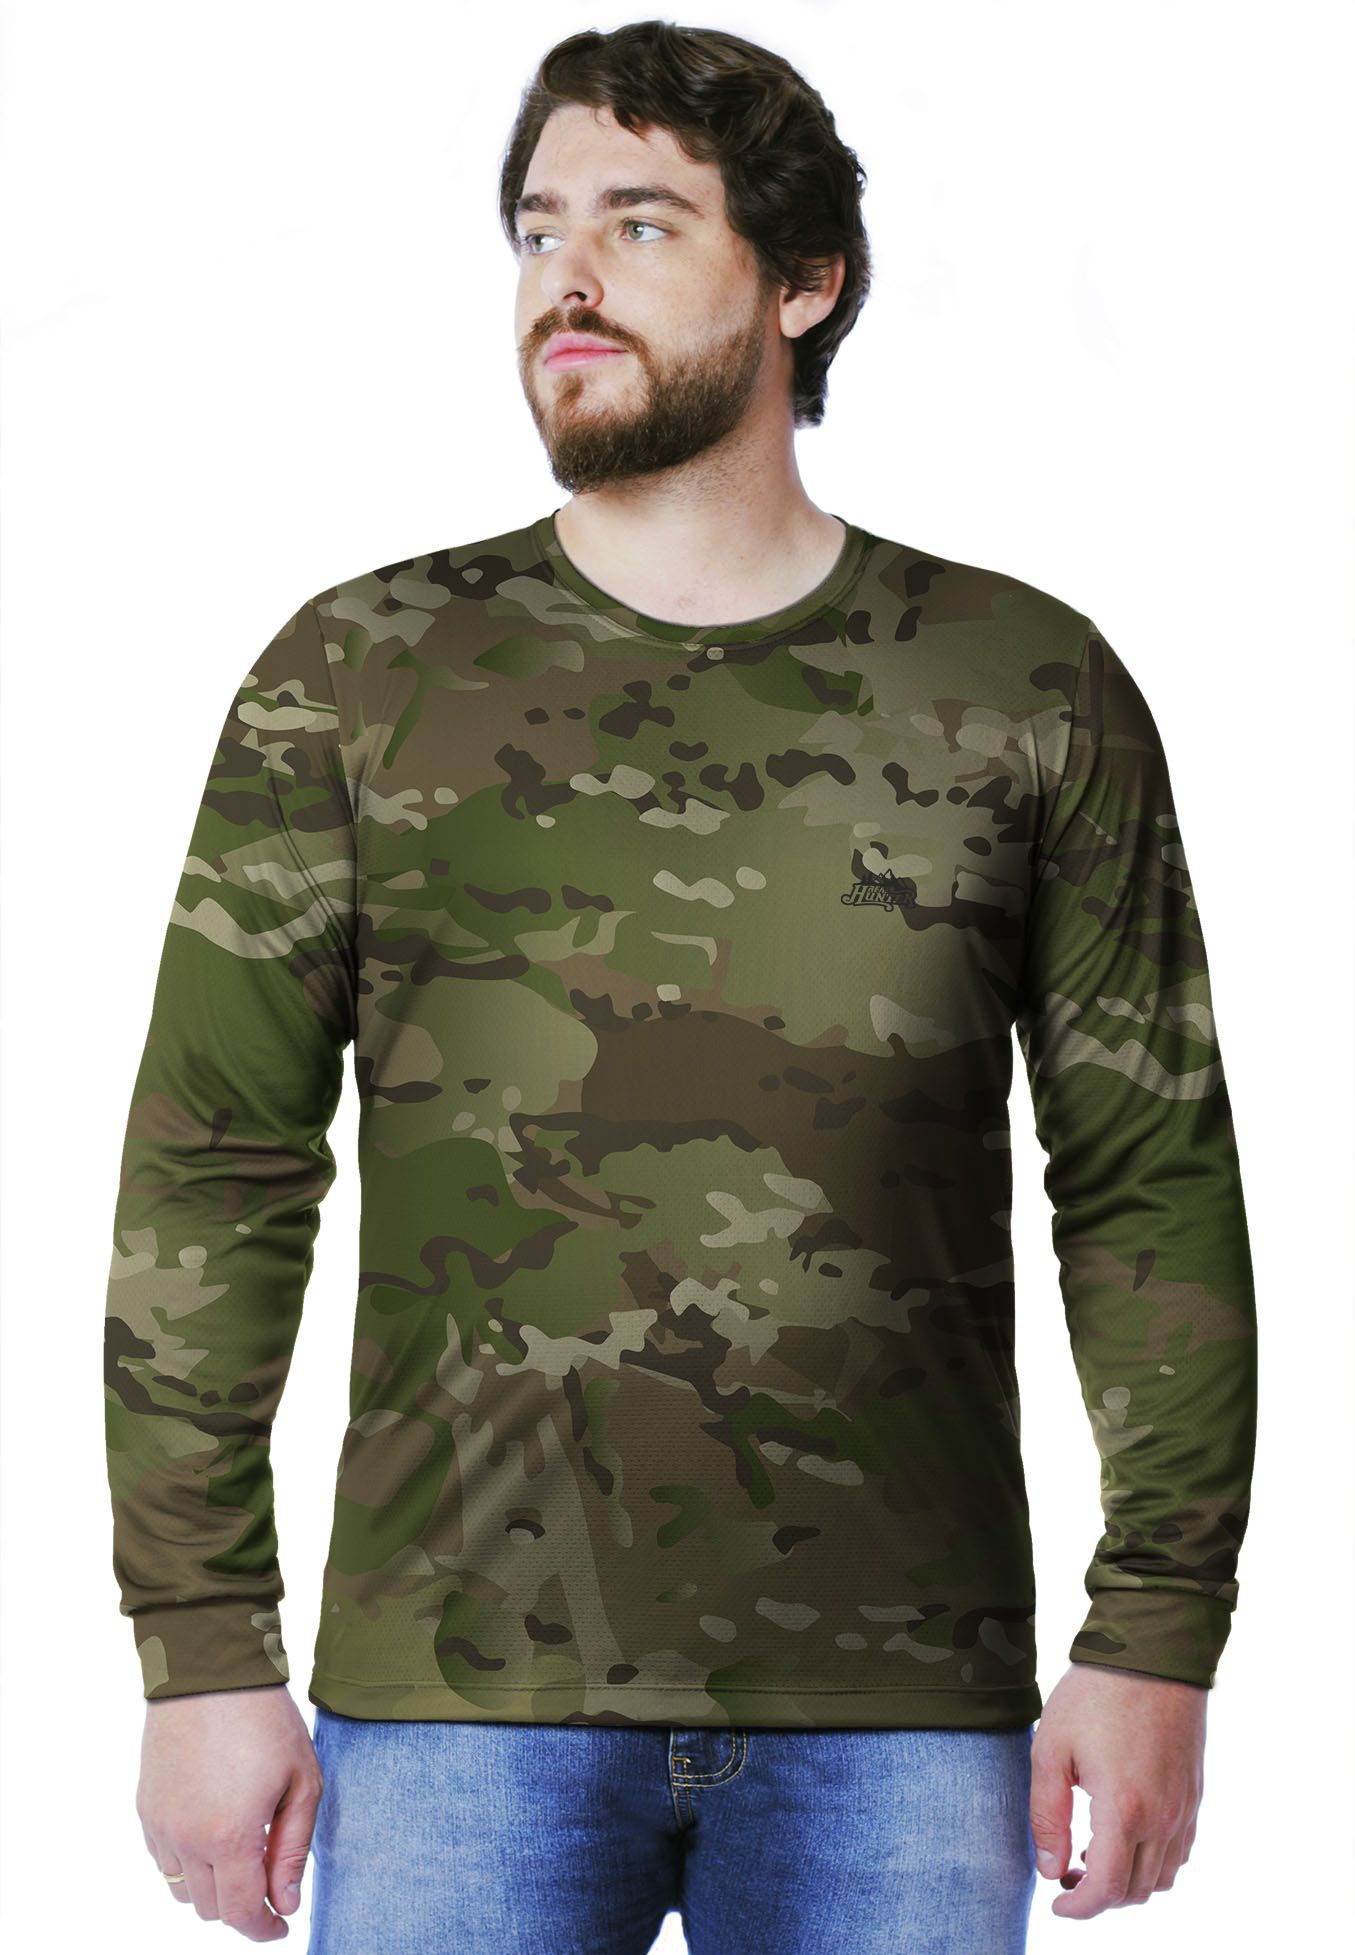 CAMISETA CAMUFLADA MULTICAM MANGA LONGA MASCULINA  - REAL HUNTER OUTDOORS